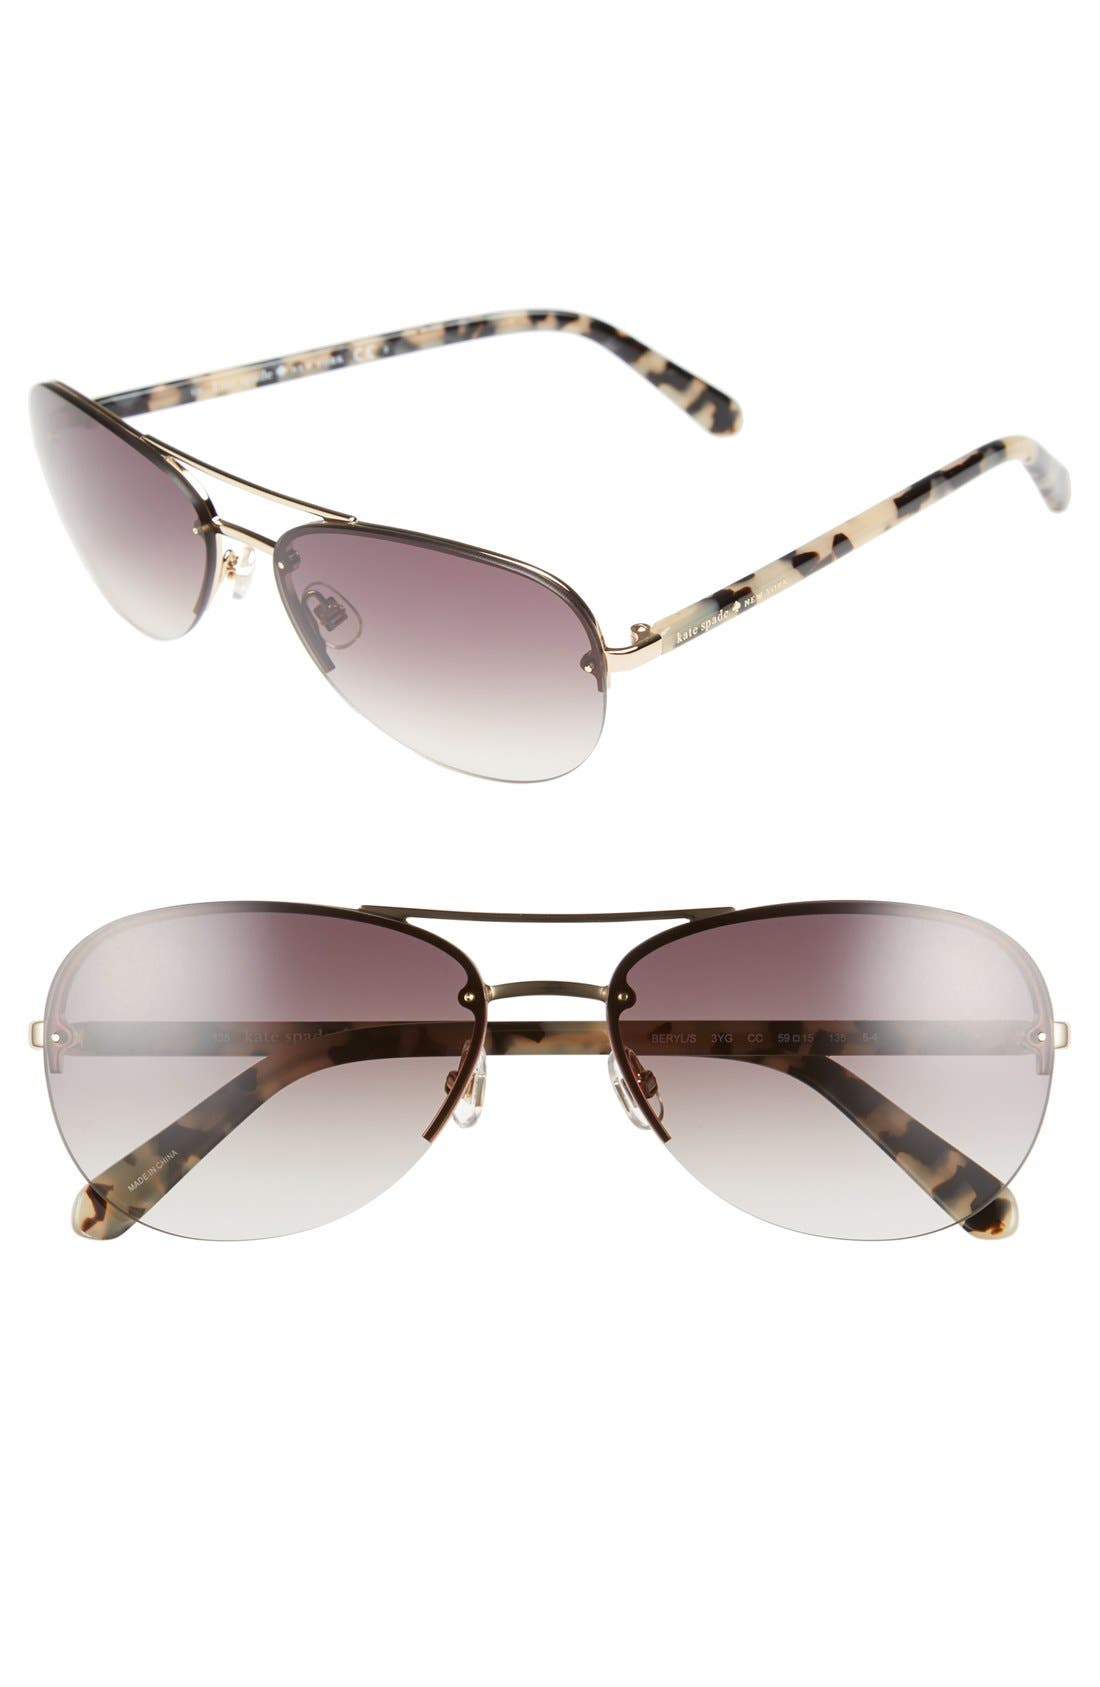 Main Image - kate spade new york 'beryls' 59mm sunglasses